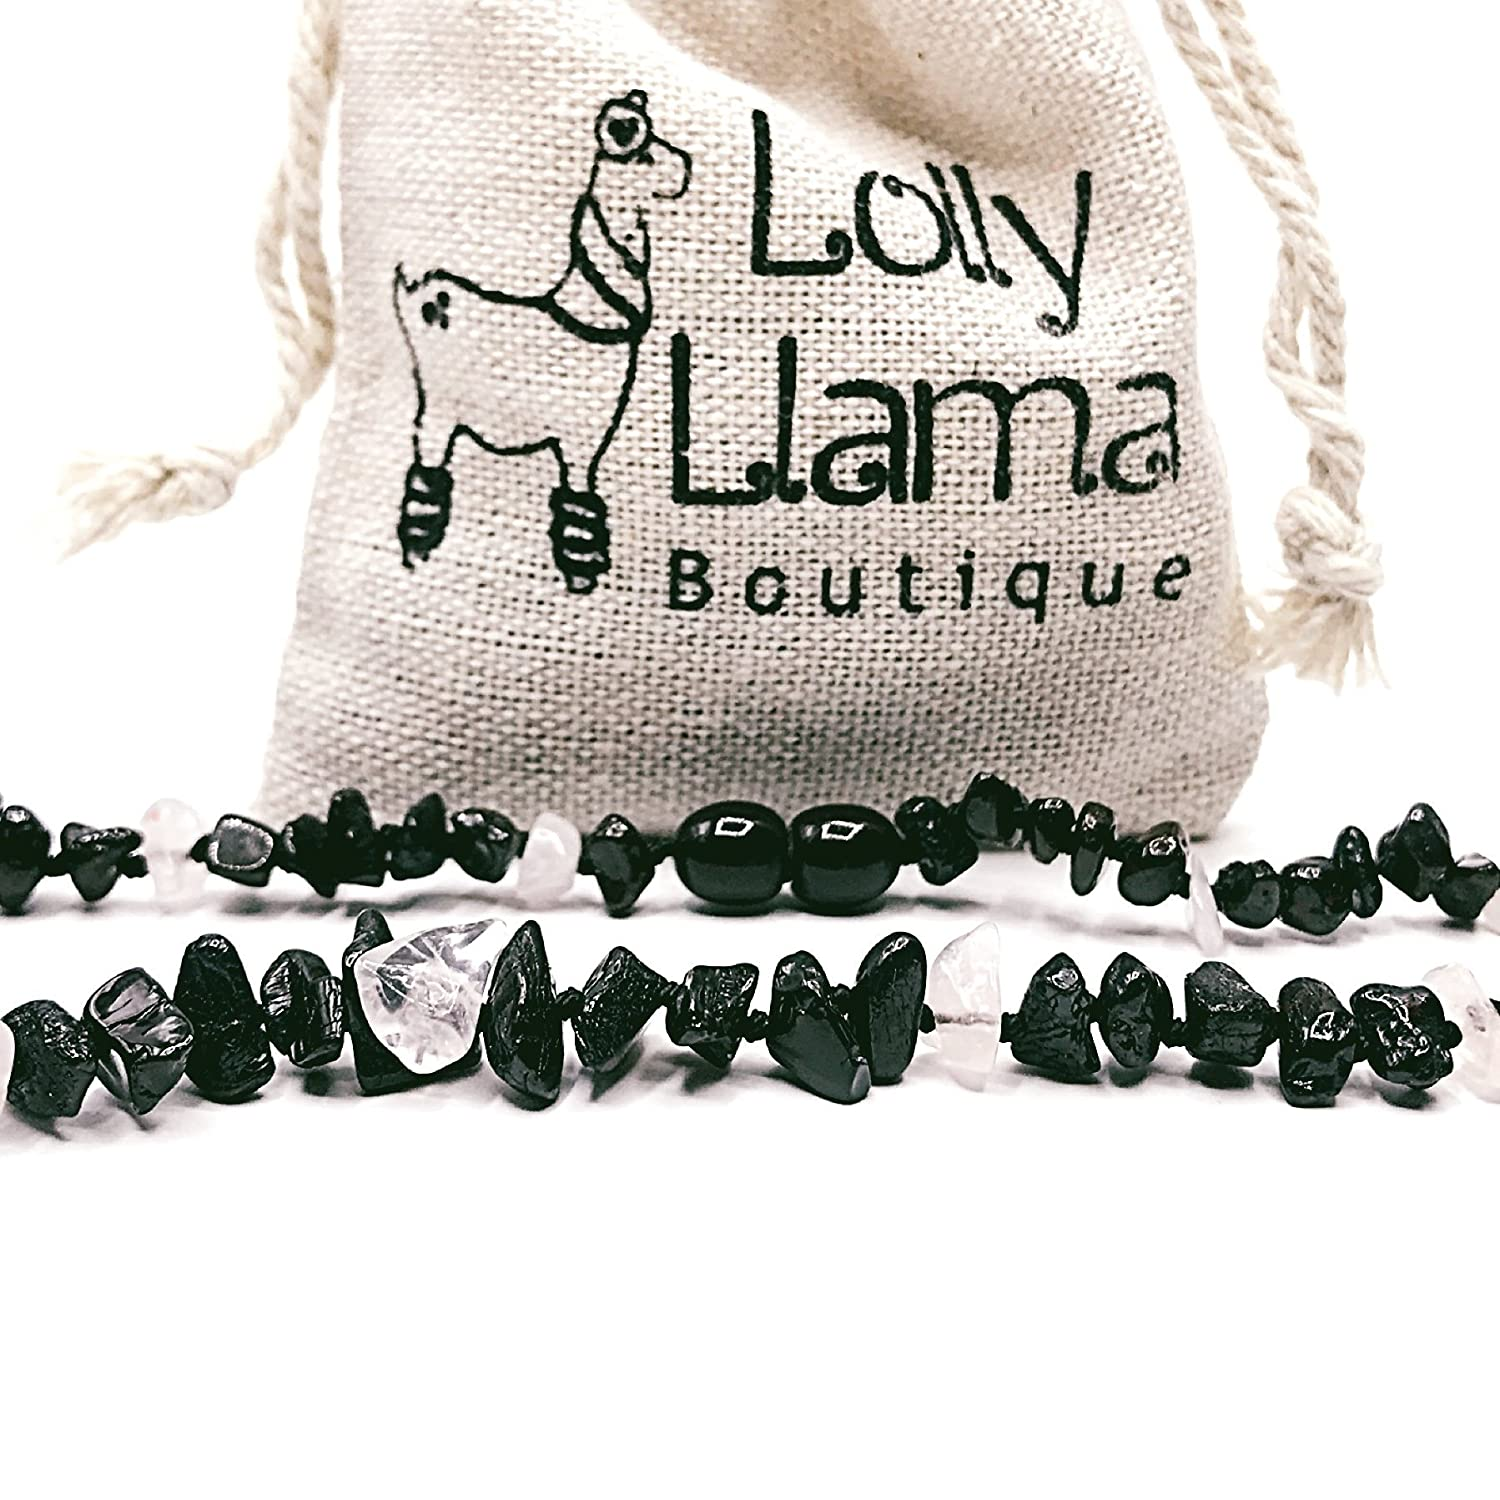 11 Inches Lolly Llama Beautiful Baby Baltic Amber Teething Necklace Drooling /& Teething Pain Relief for Babies Certified Genuine Baltic Amber Chip Bead Rose Quartz